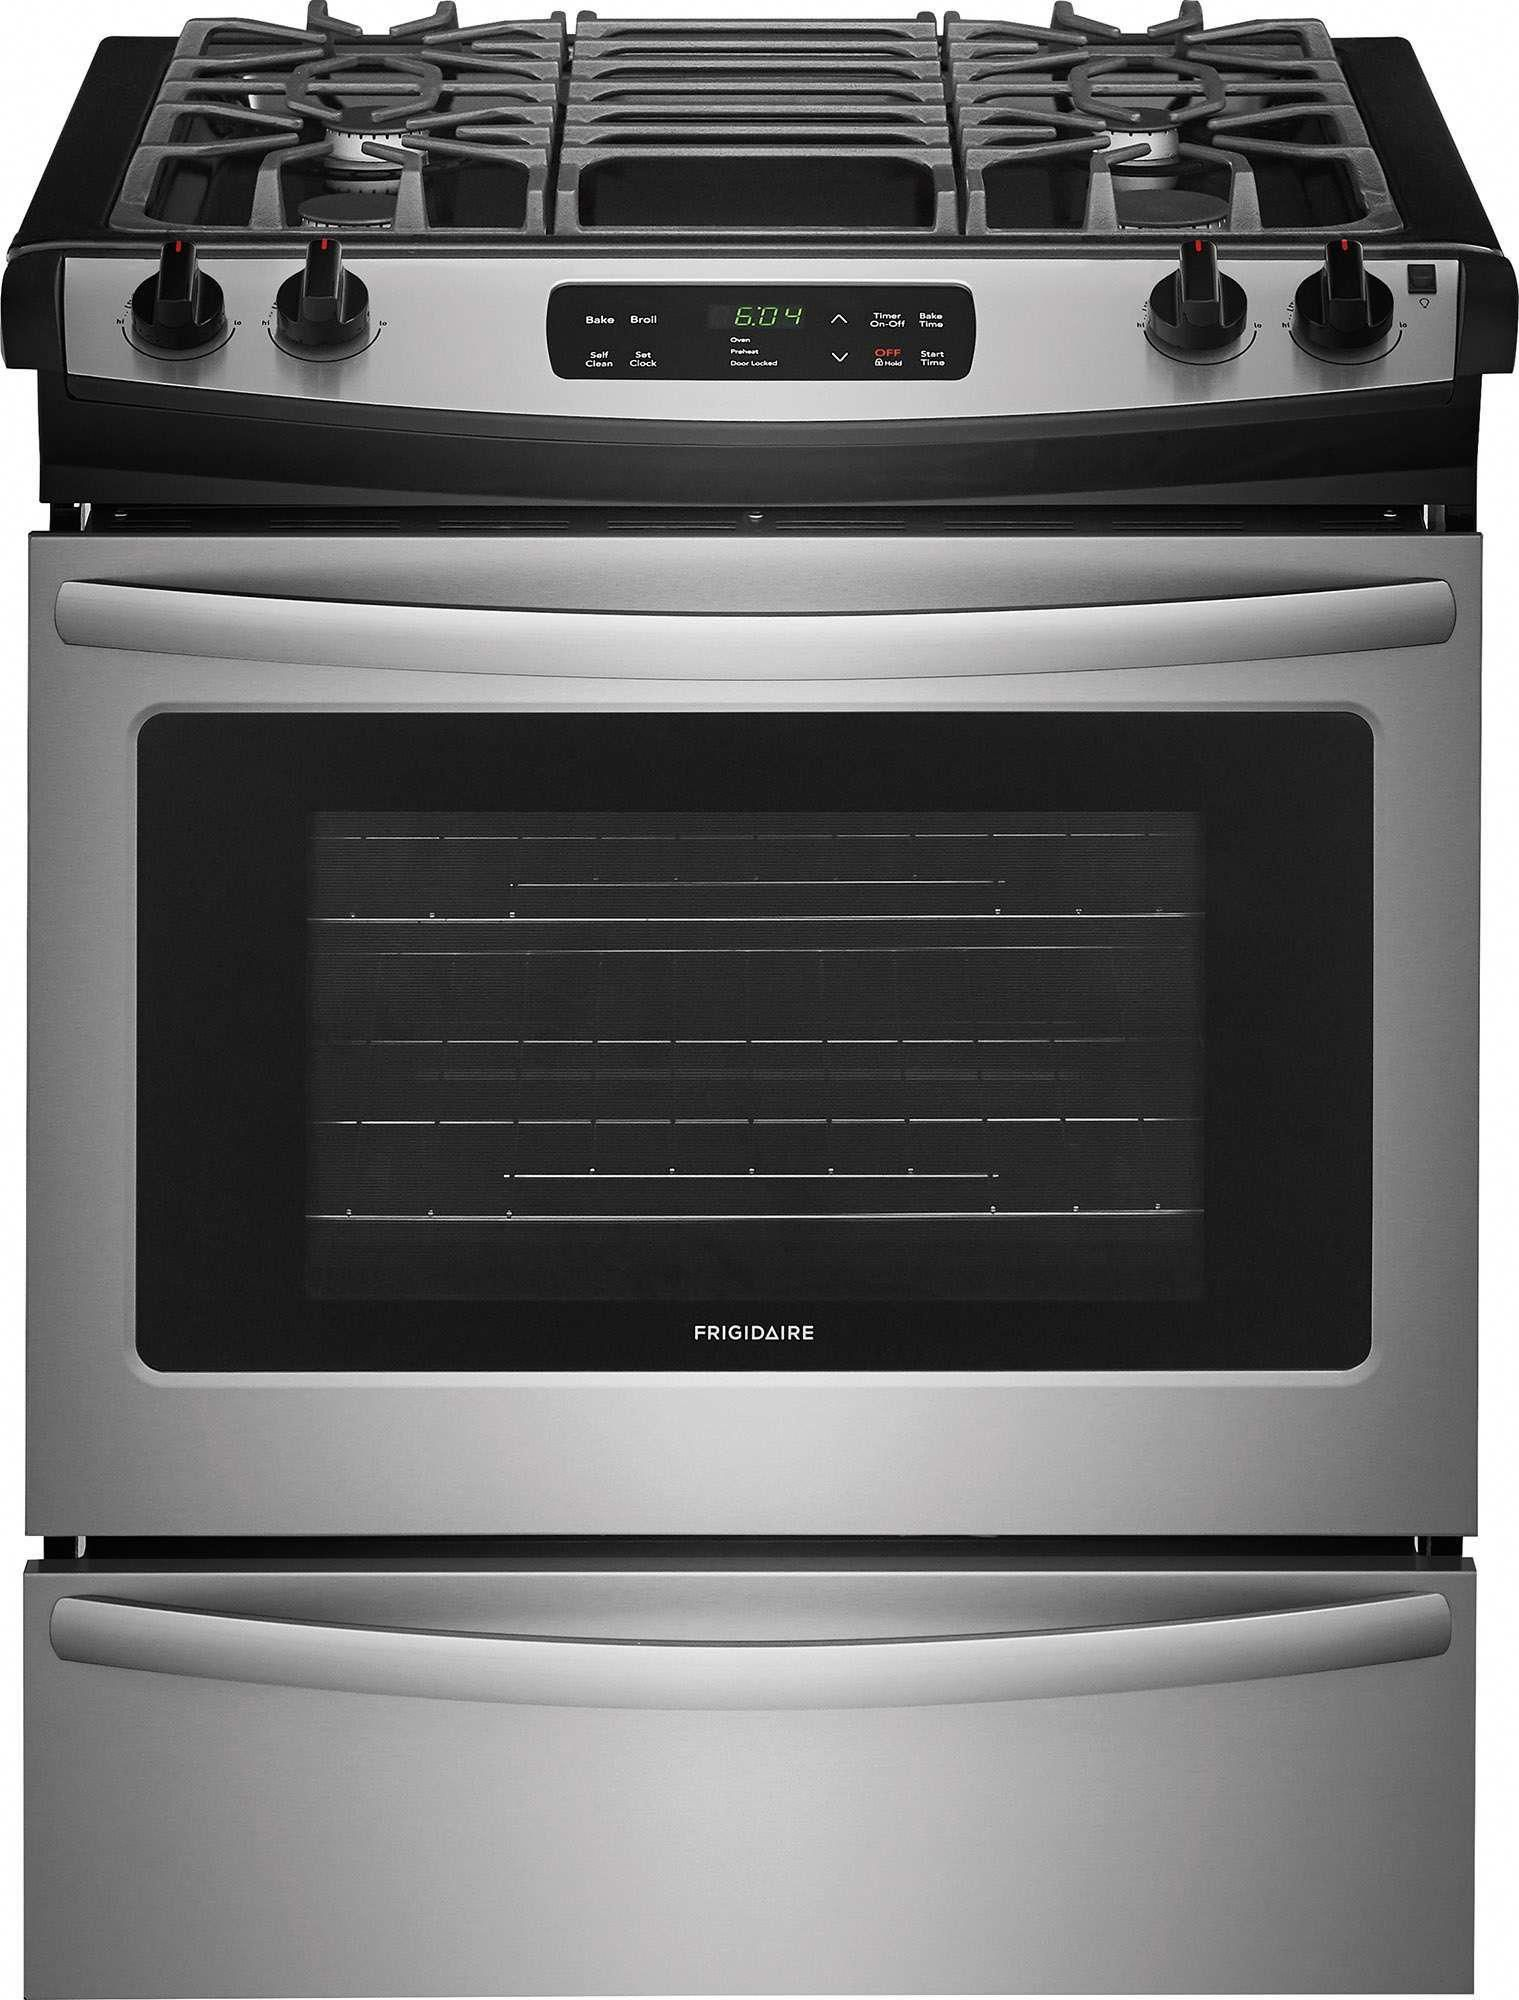 19 Amazing Steam Oven Cooking In 2020 Oven Cleaning Frigidaire Steam Oven